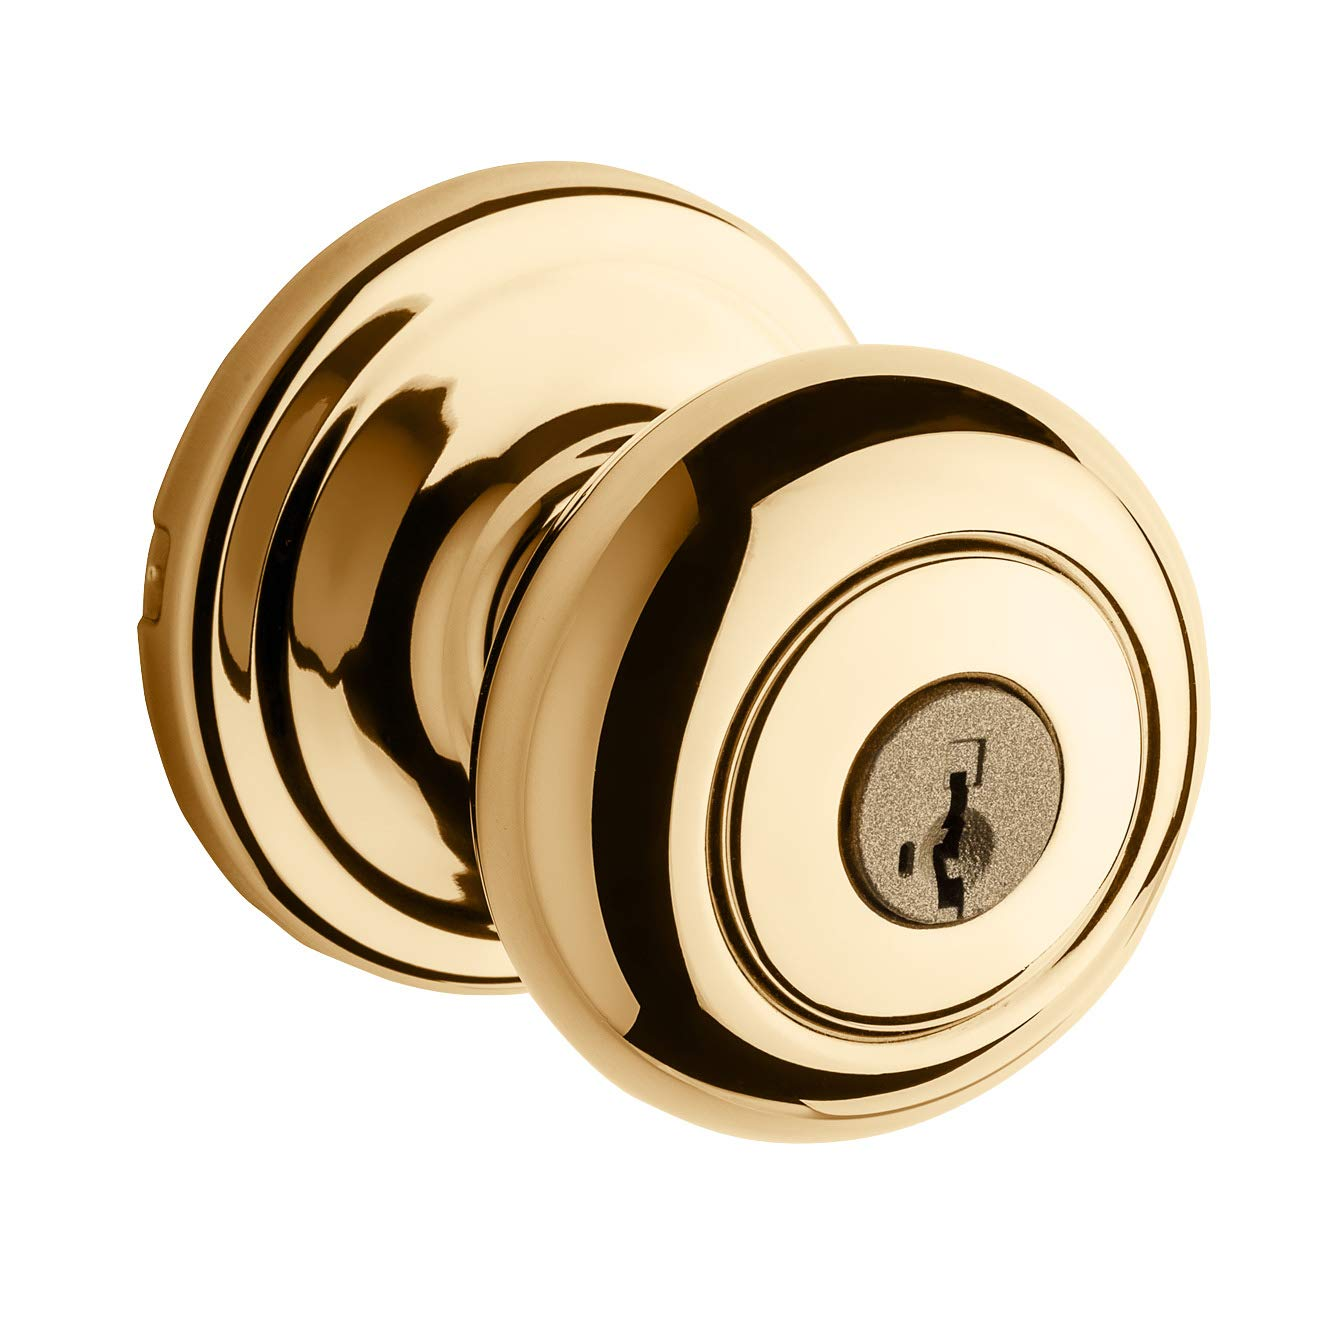 Kwikset Juno Entry Knob featuring SmartKey in Polished Brass